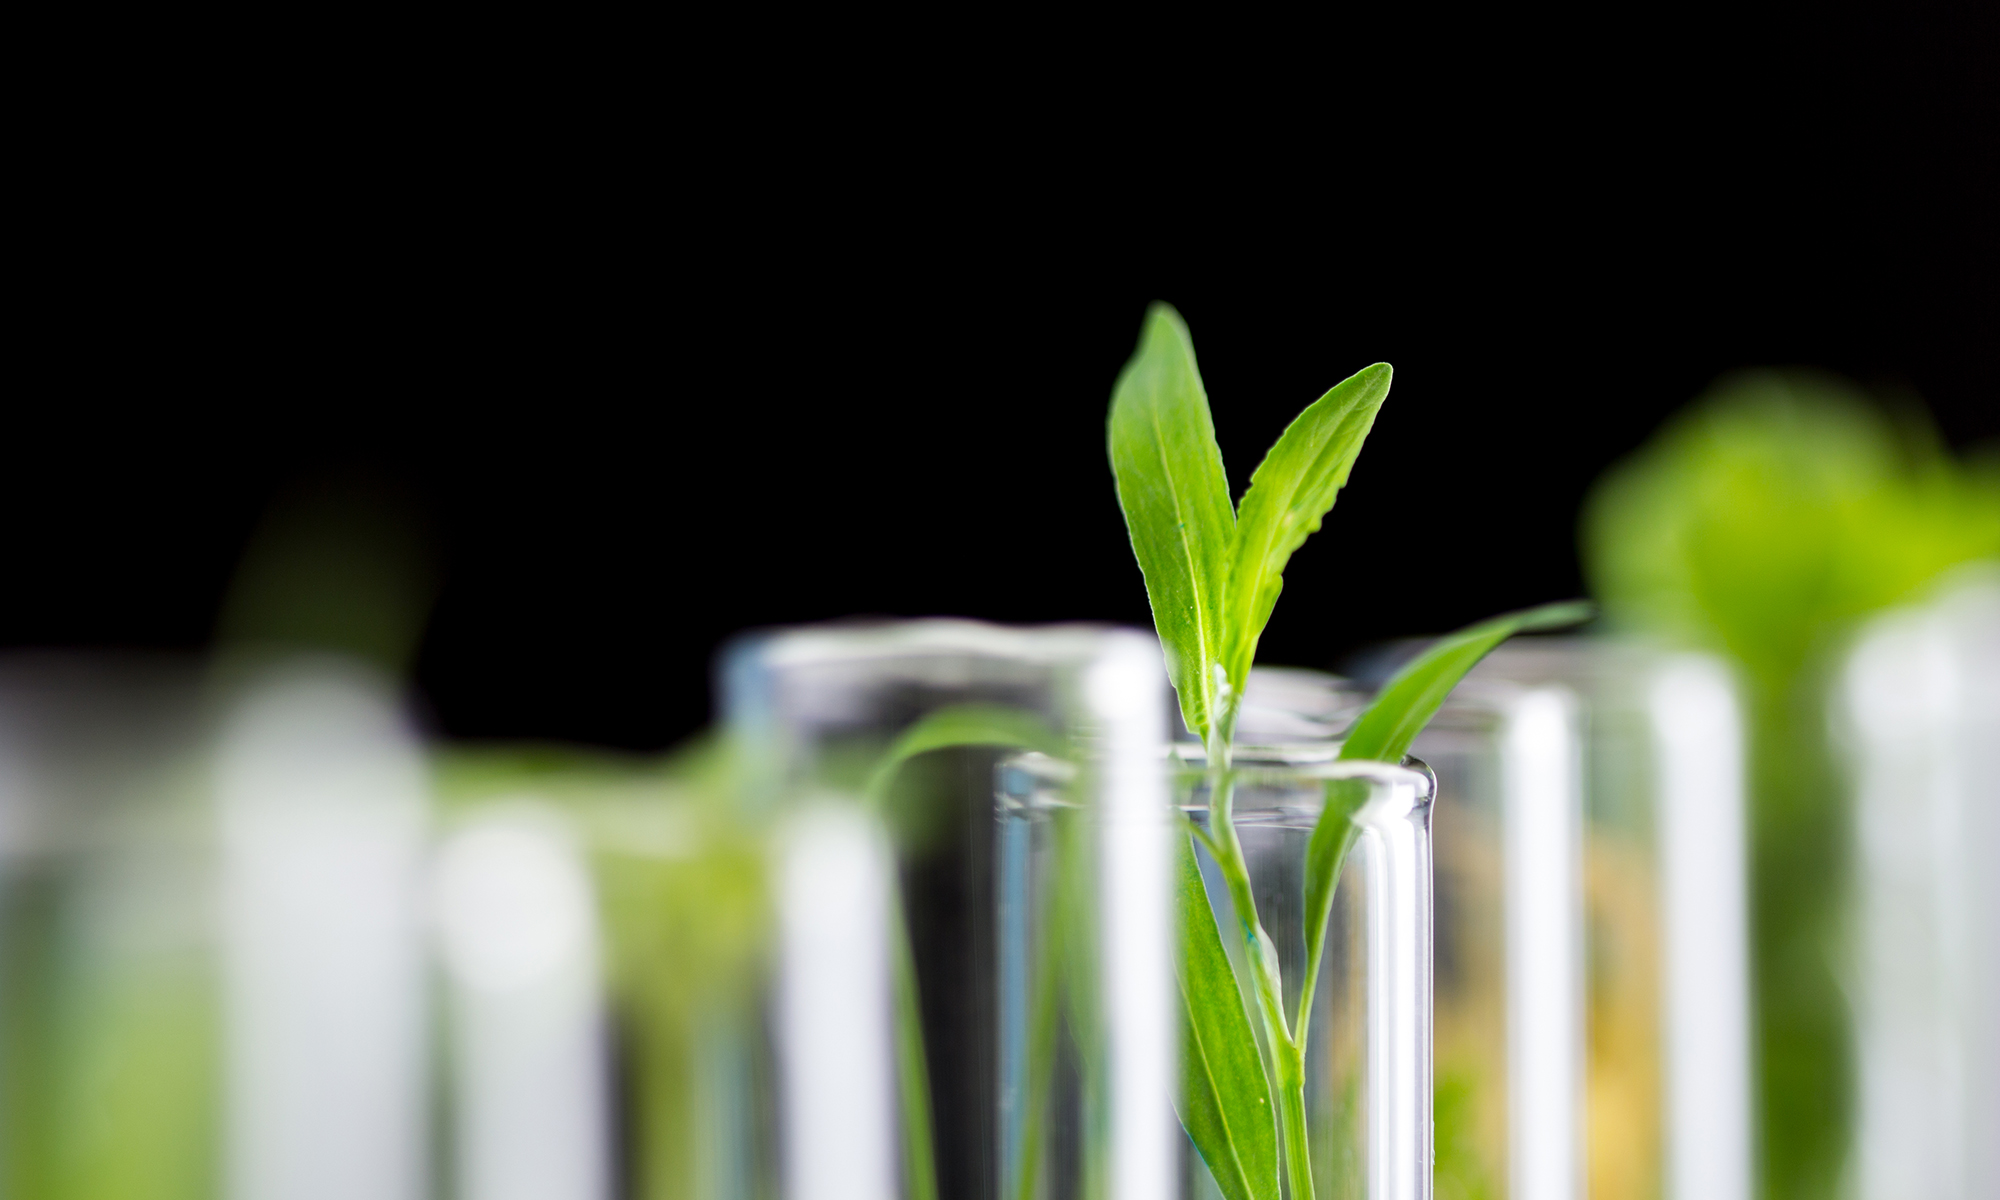 Project Cbd Launches Research Platform To Study Cbd